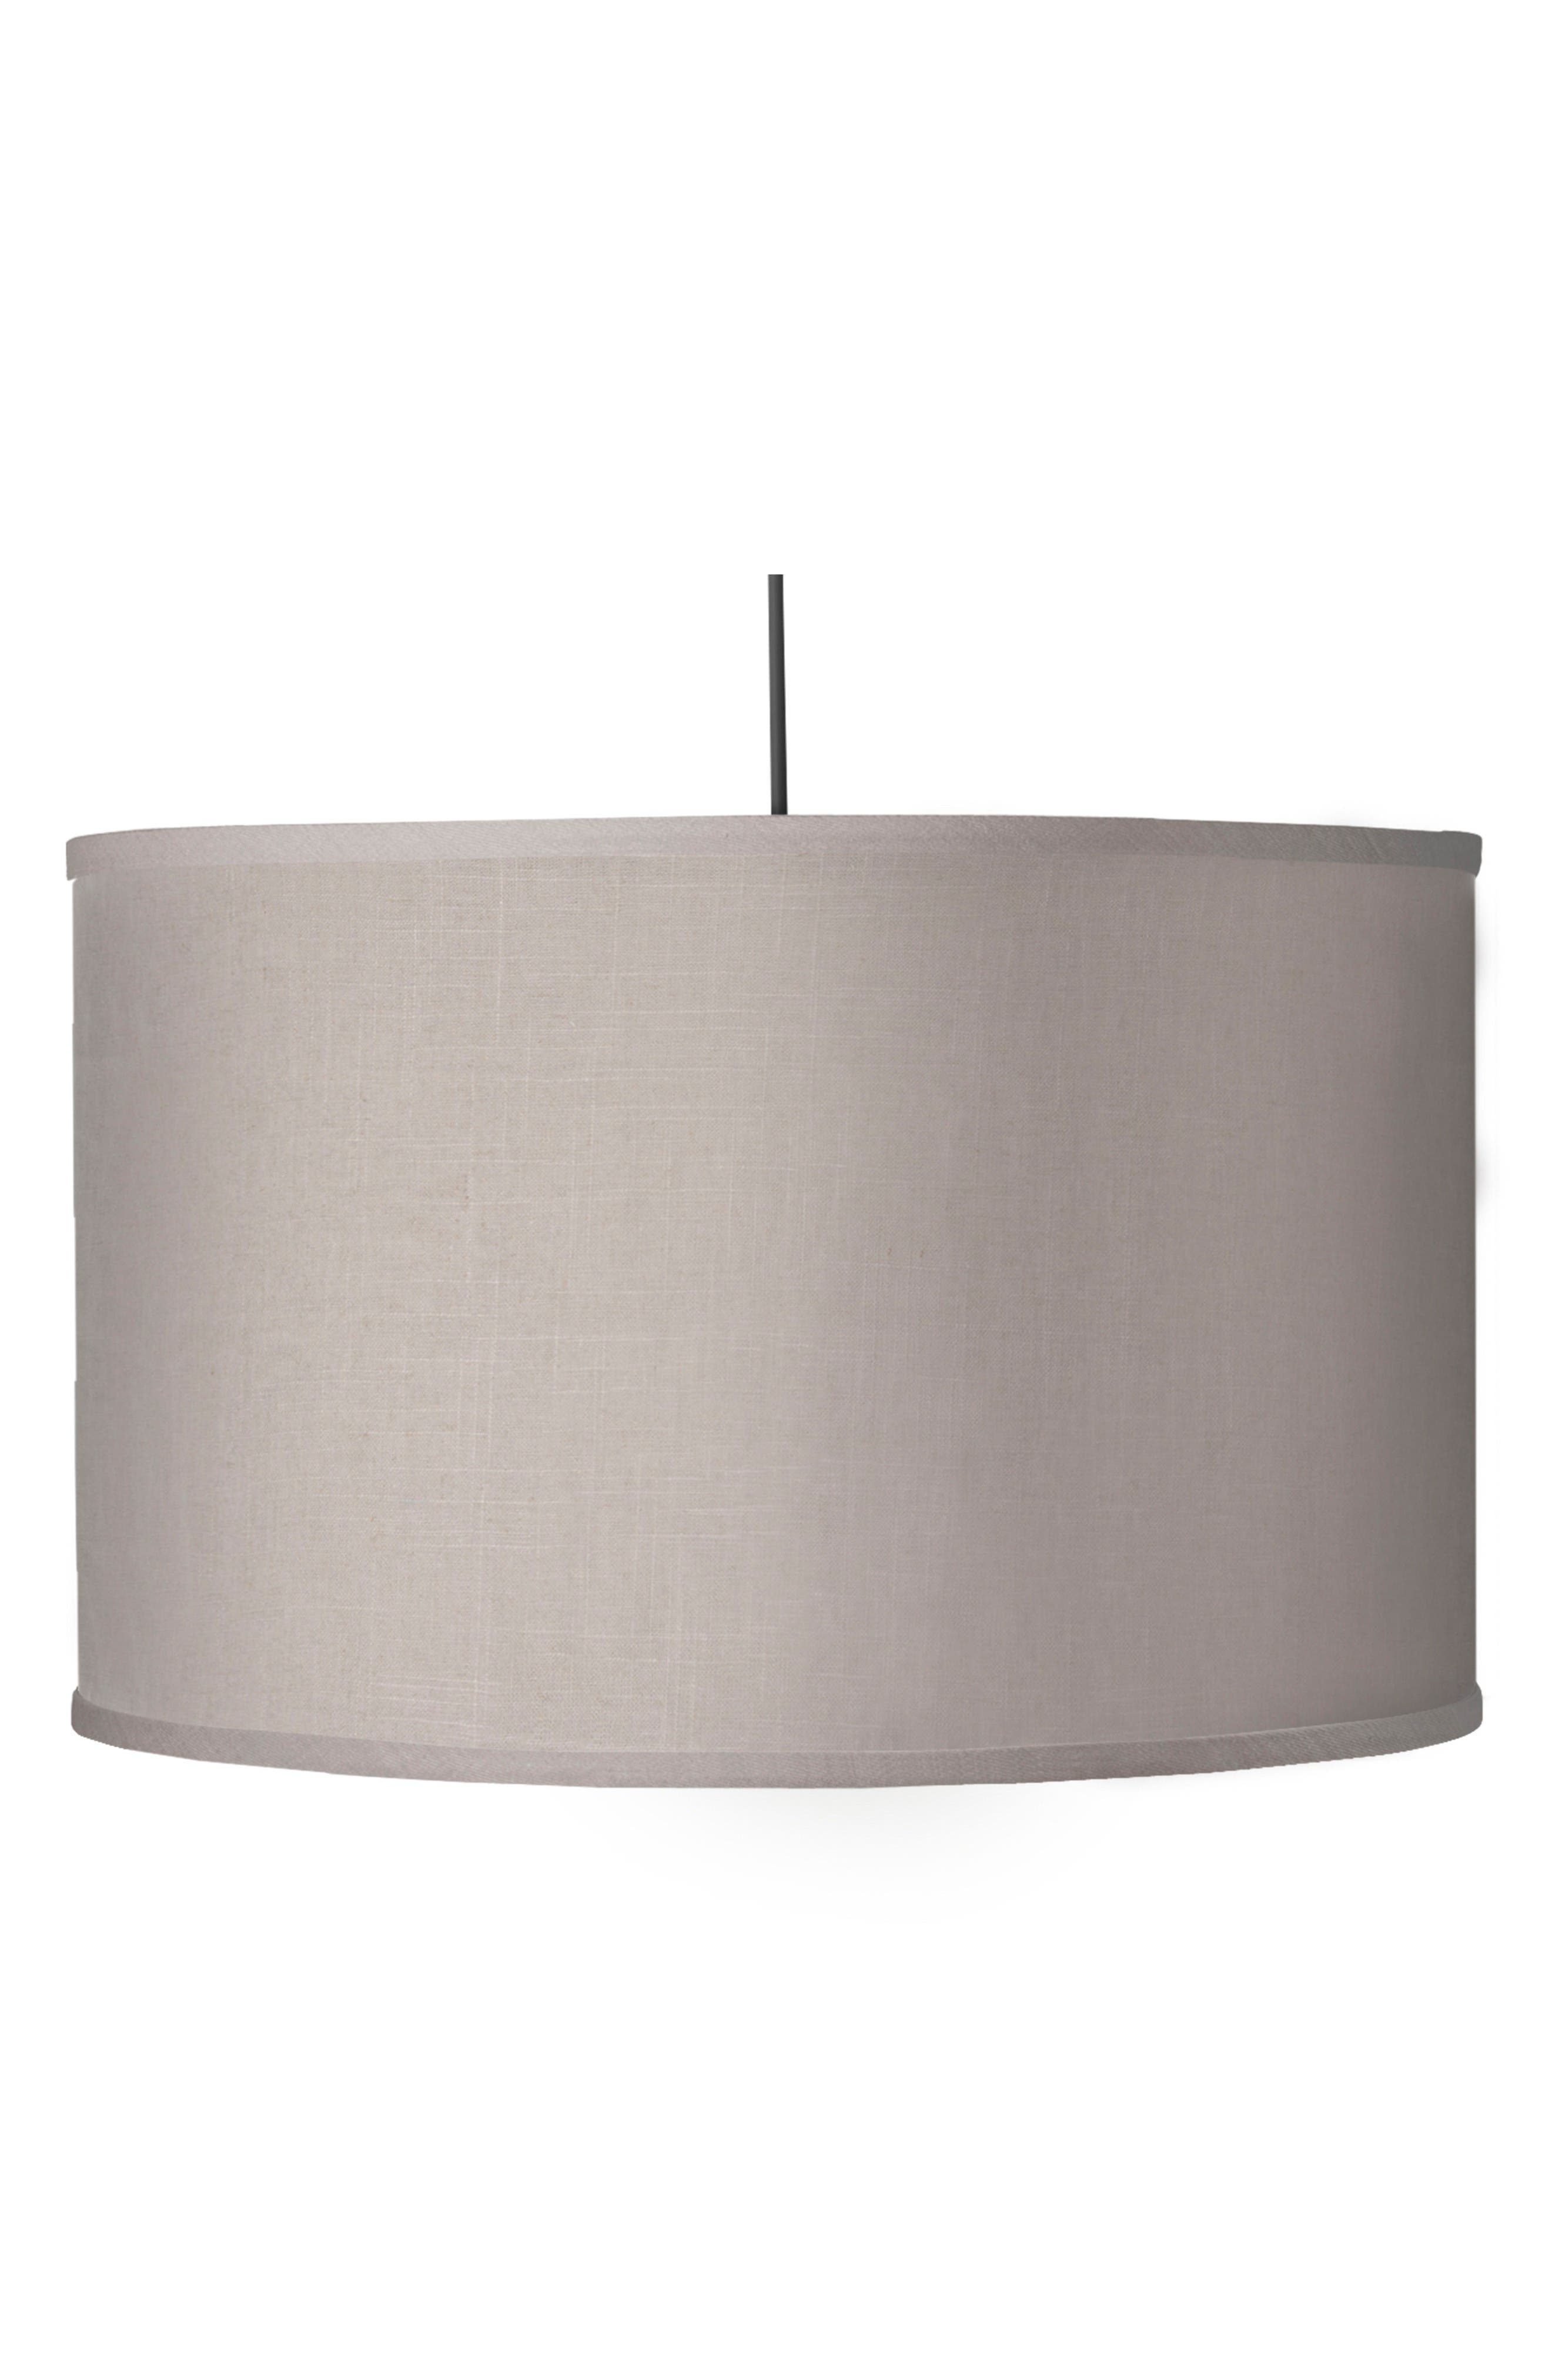 Large Cylinder Light,                             Main thumbnail 1, color,                             Solid Linen